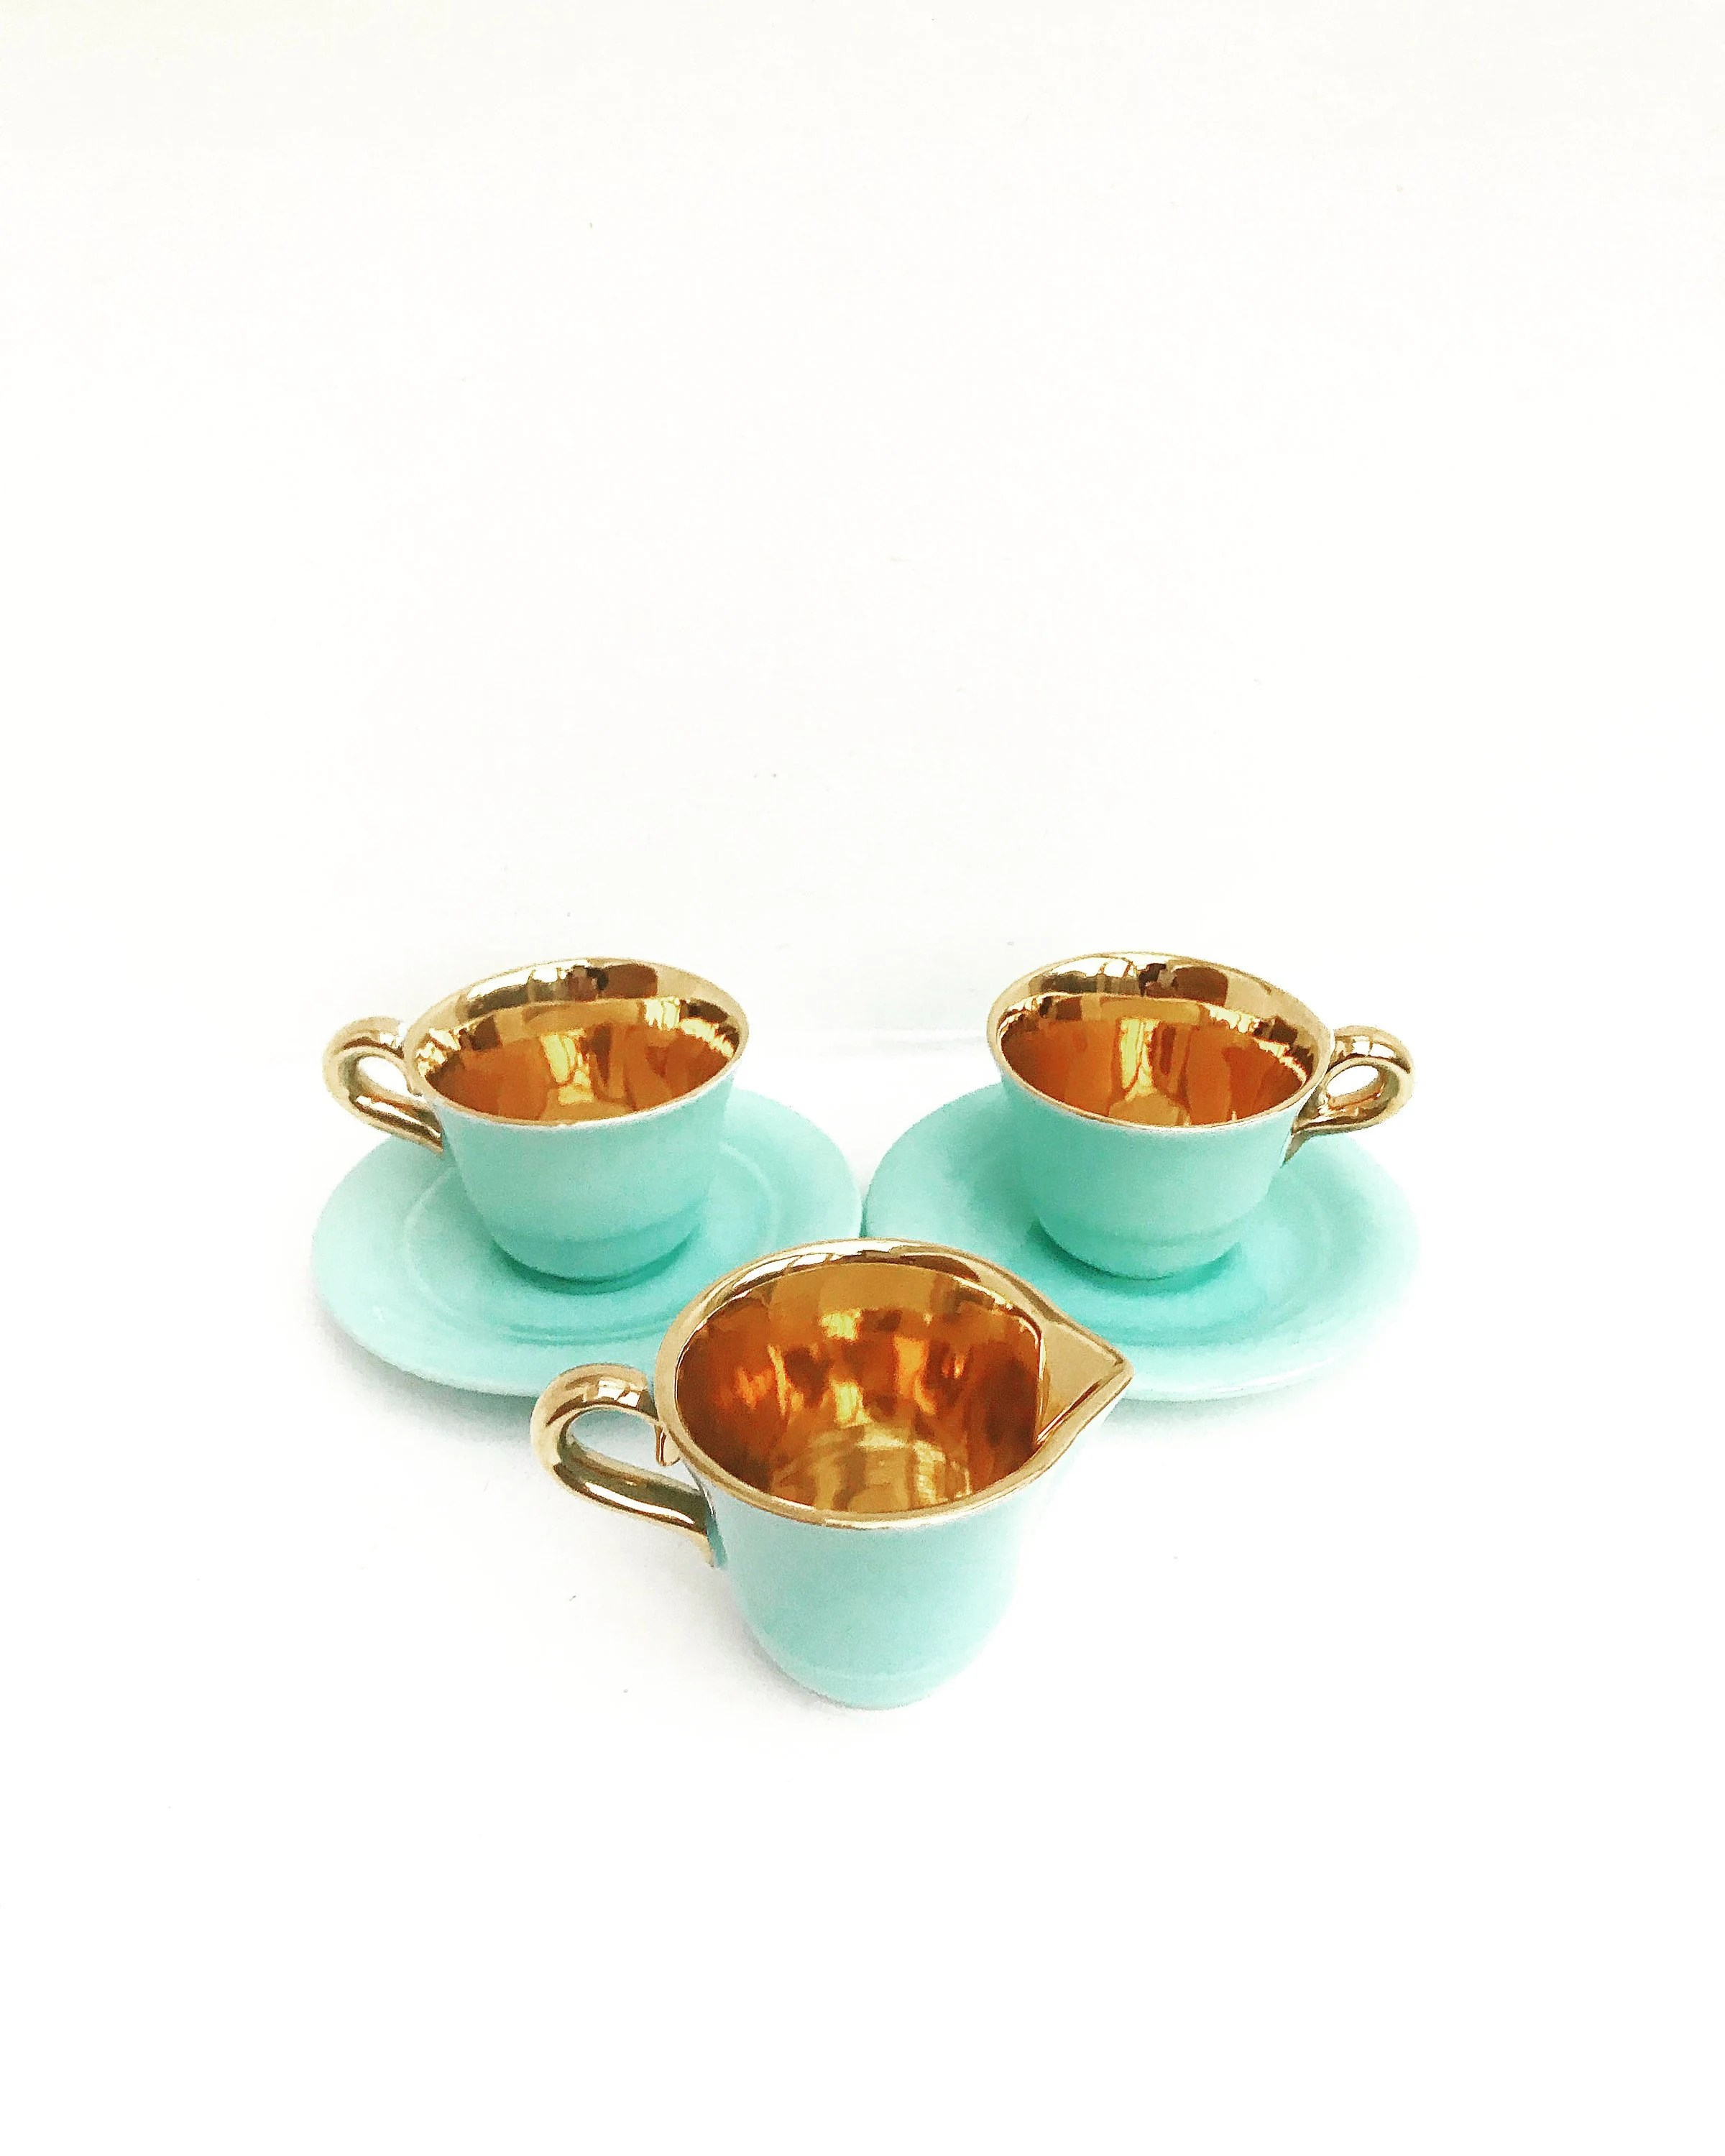 Small Coffee Cups And Saucers Aqua Coffee Set Belgian Pottery 2 Small Coffee Cups With Saucers And